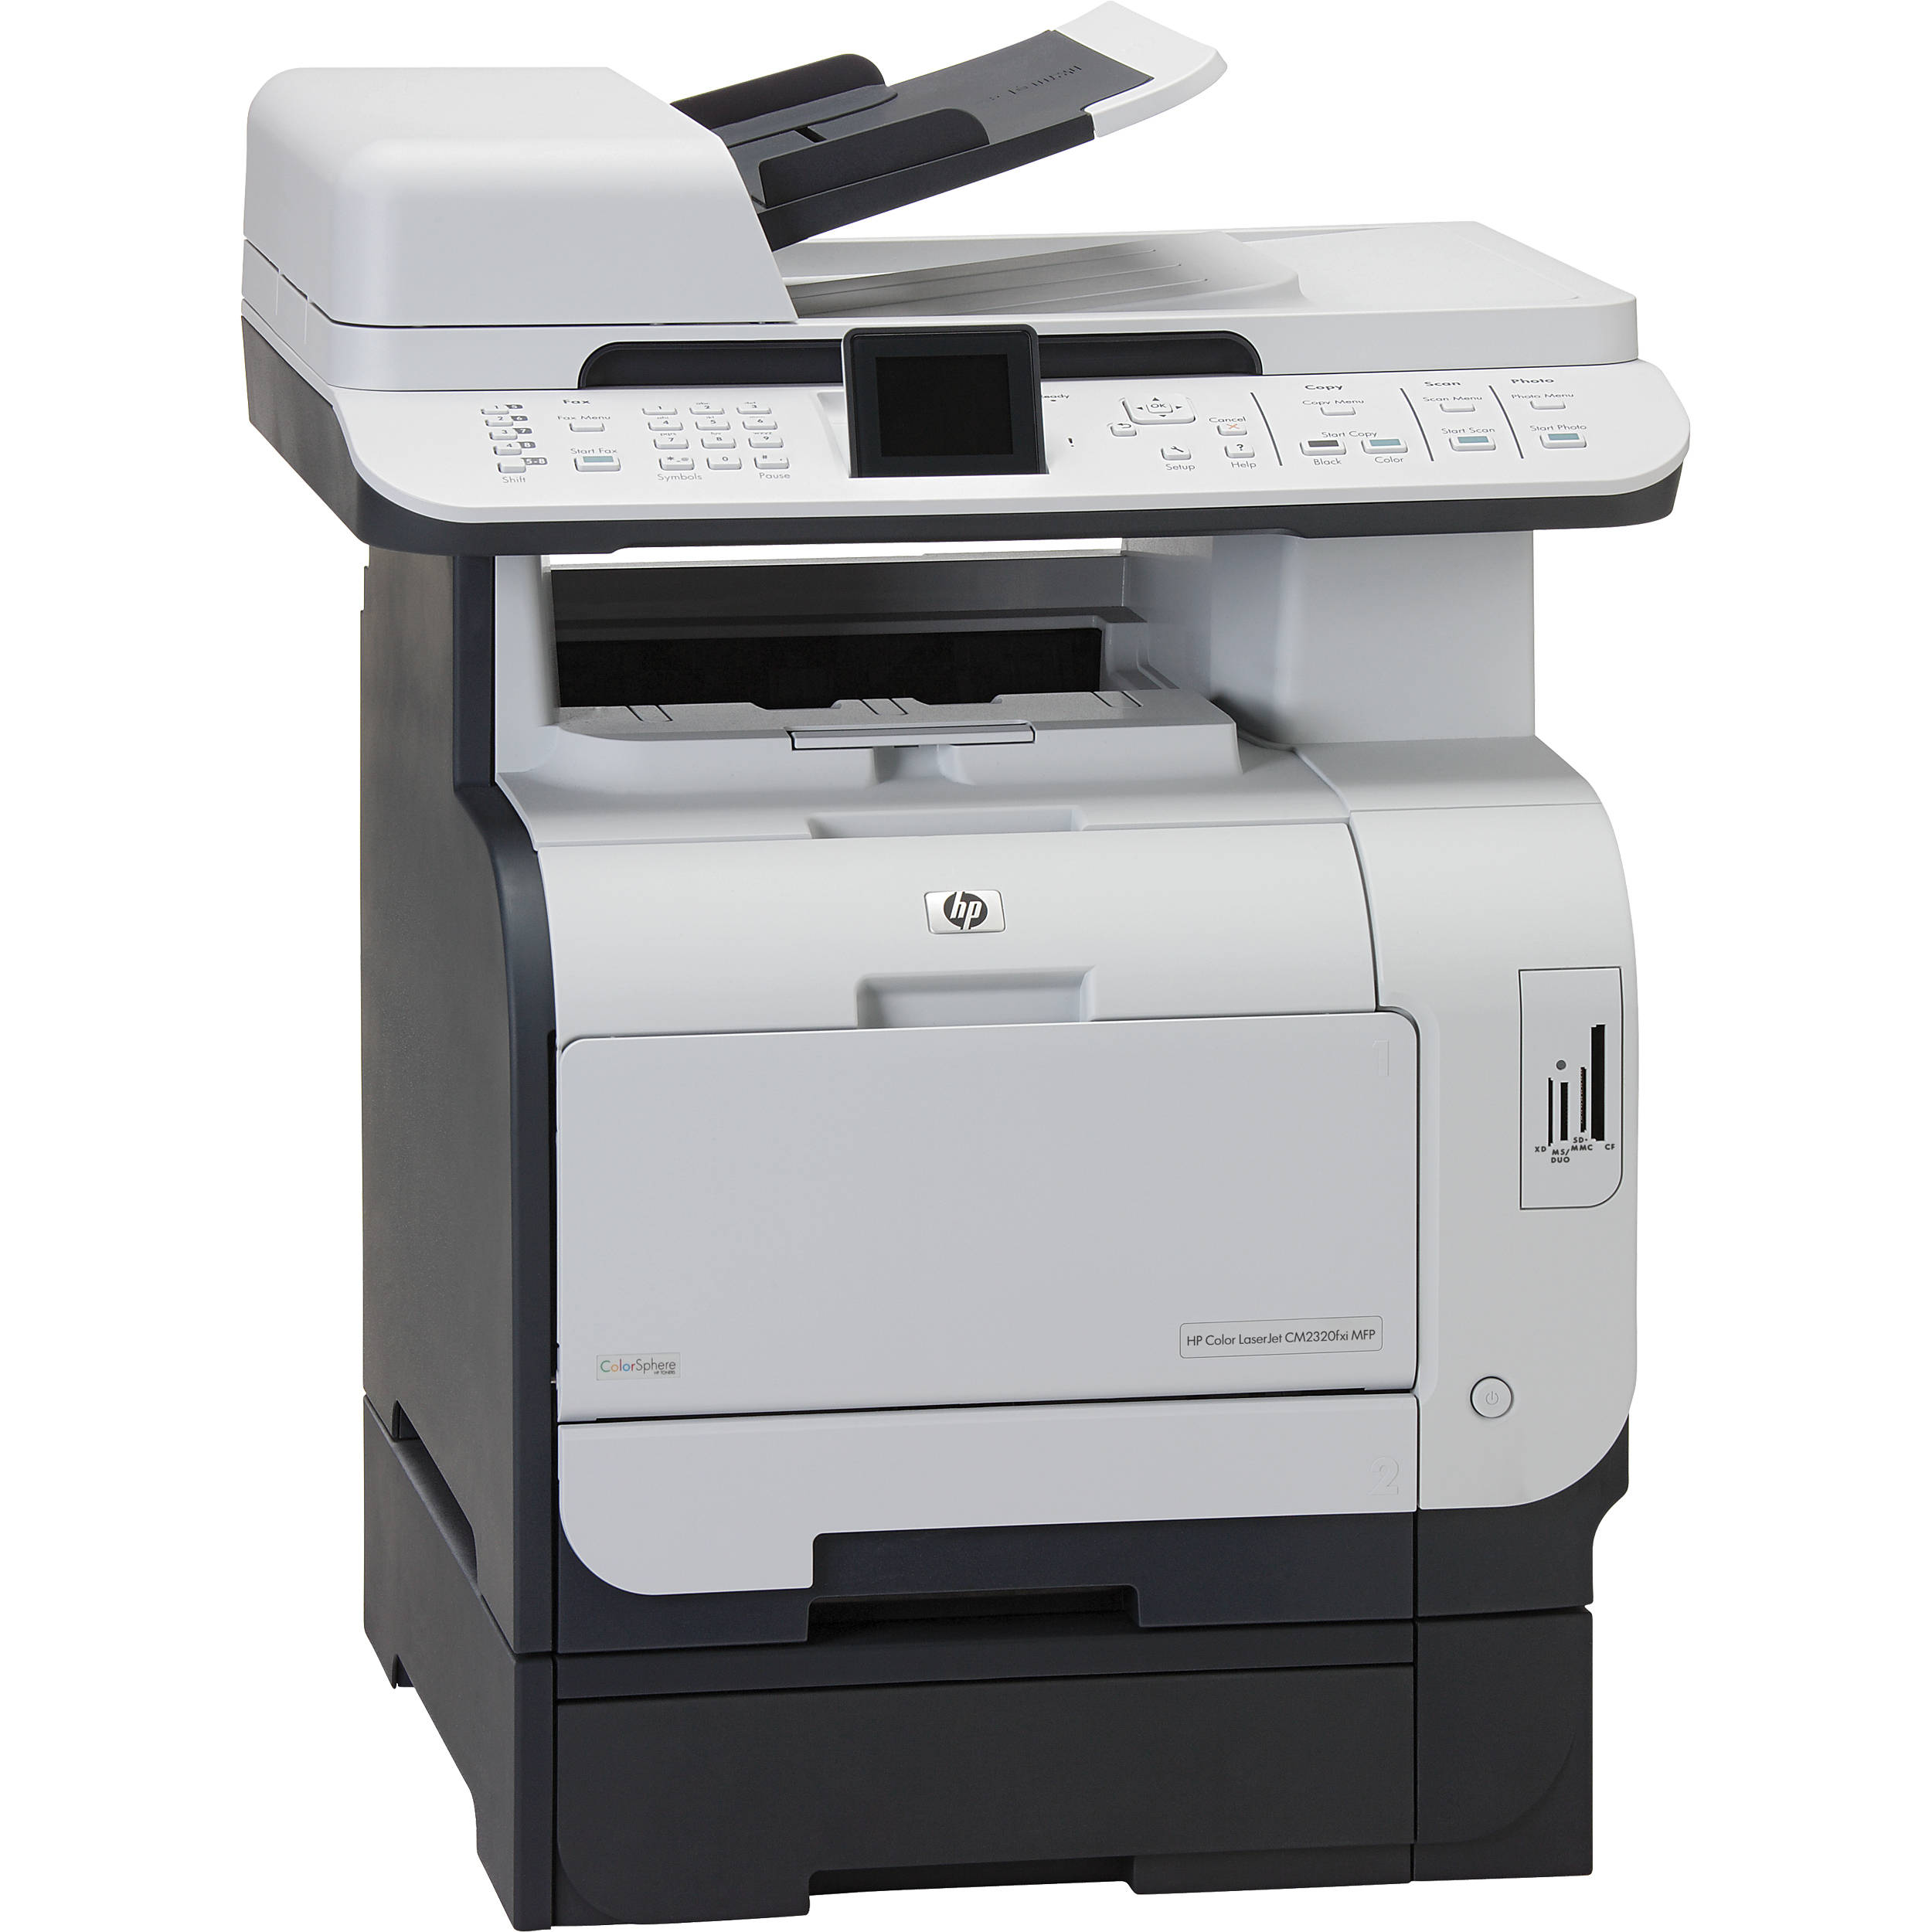 Hp color laserjet cm2320 driver software download | hp soft drivers.